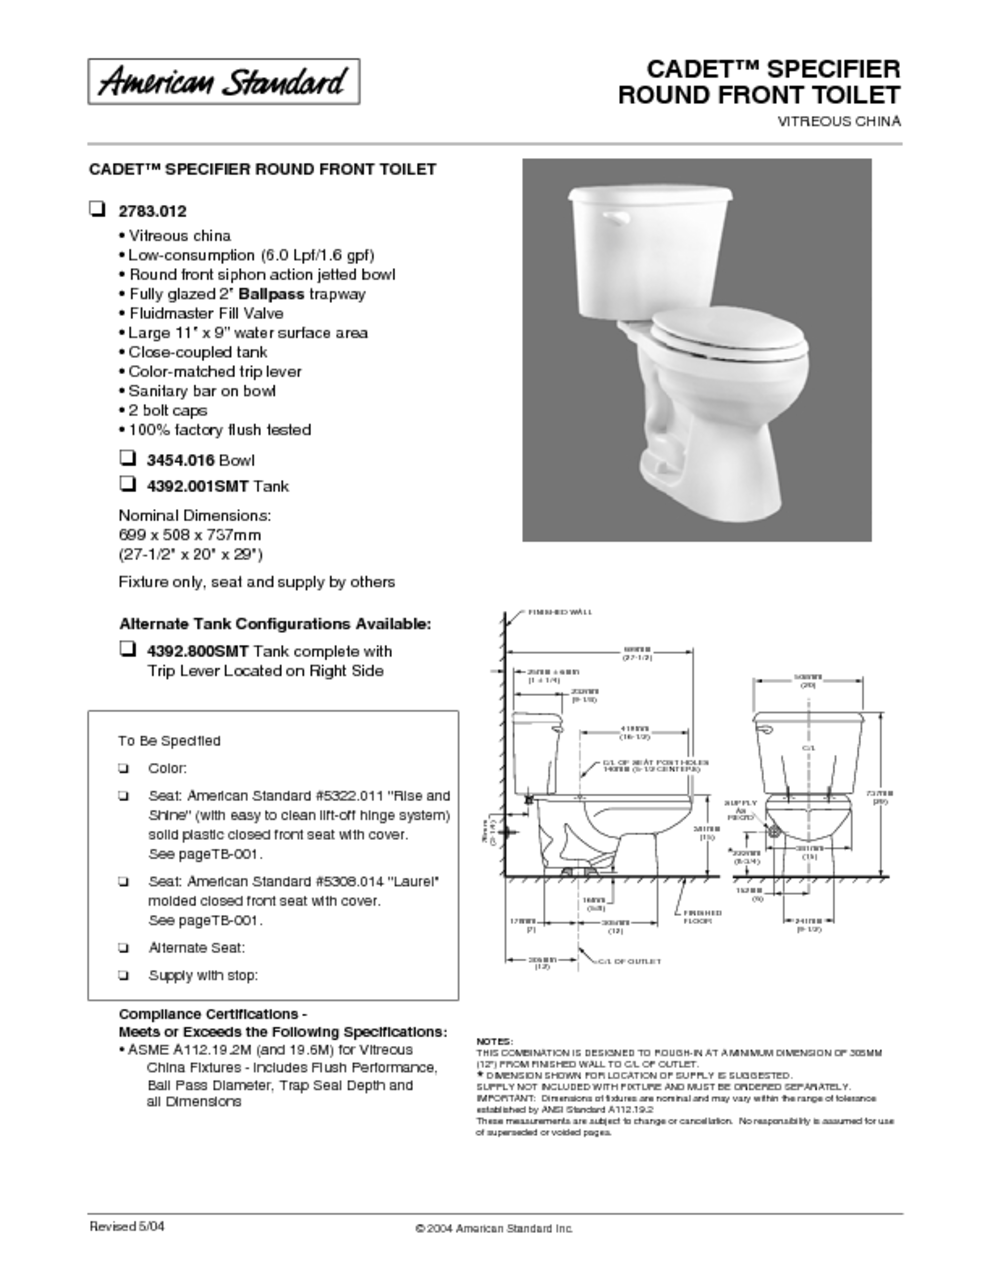 Cadet Specifier Round Front Toilet 2783 012 Manuals